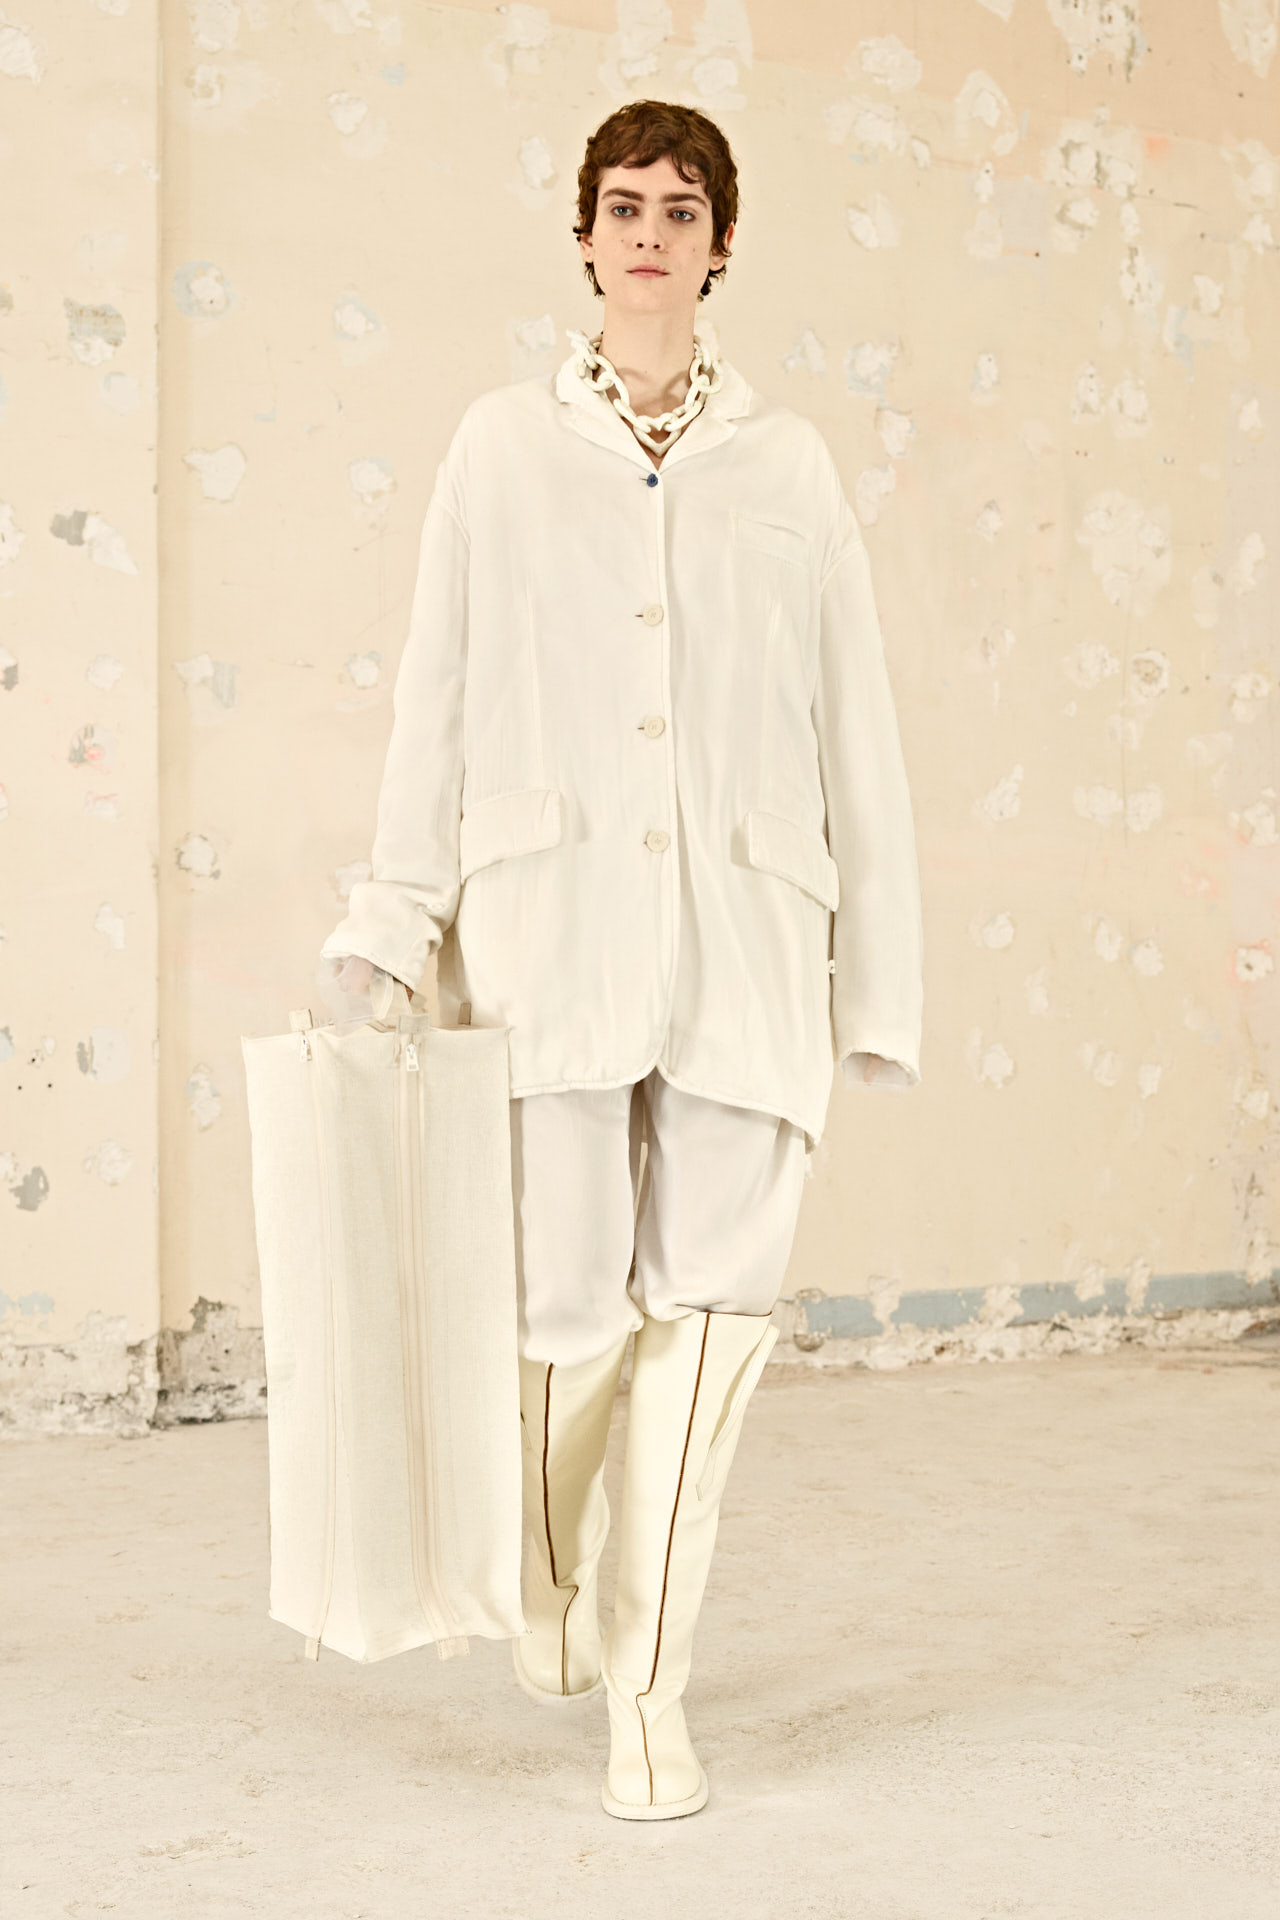 Look Fall/Winter 2021, image 34